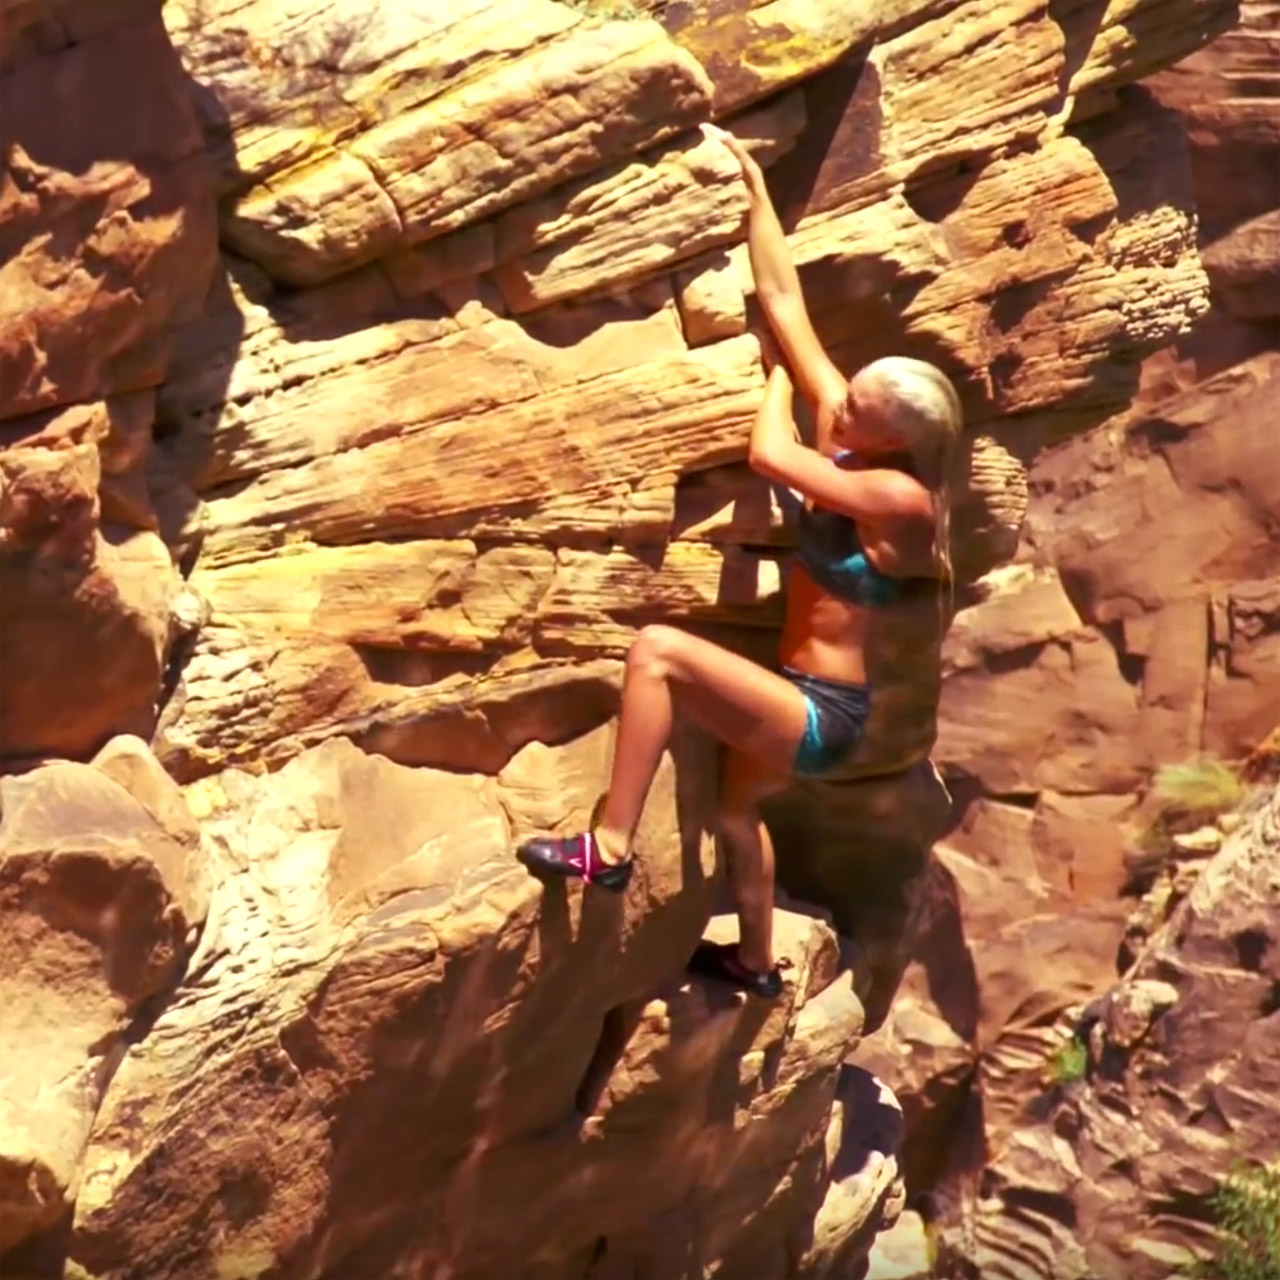 Sierra Blair-Coyle free climbing on riverside cliffs